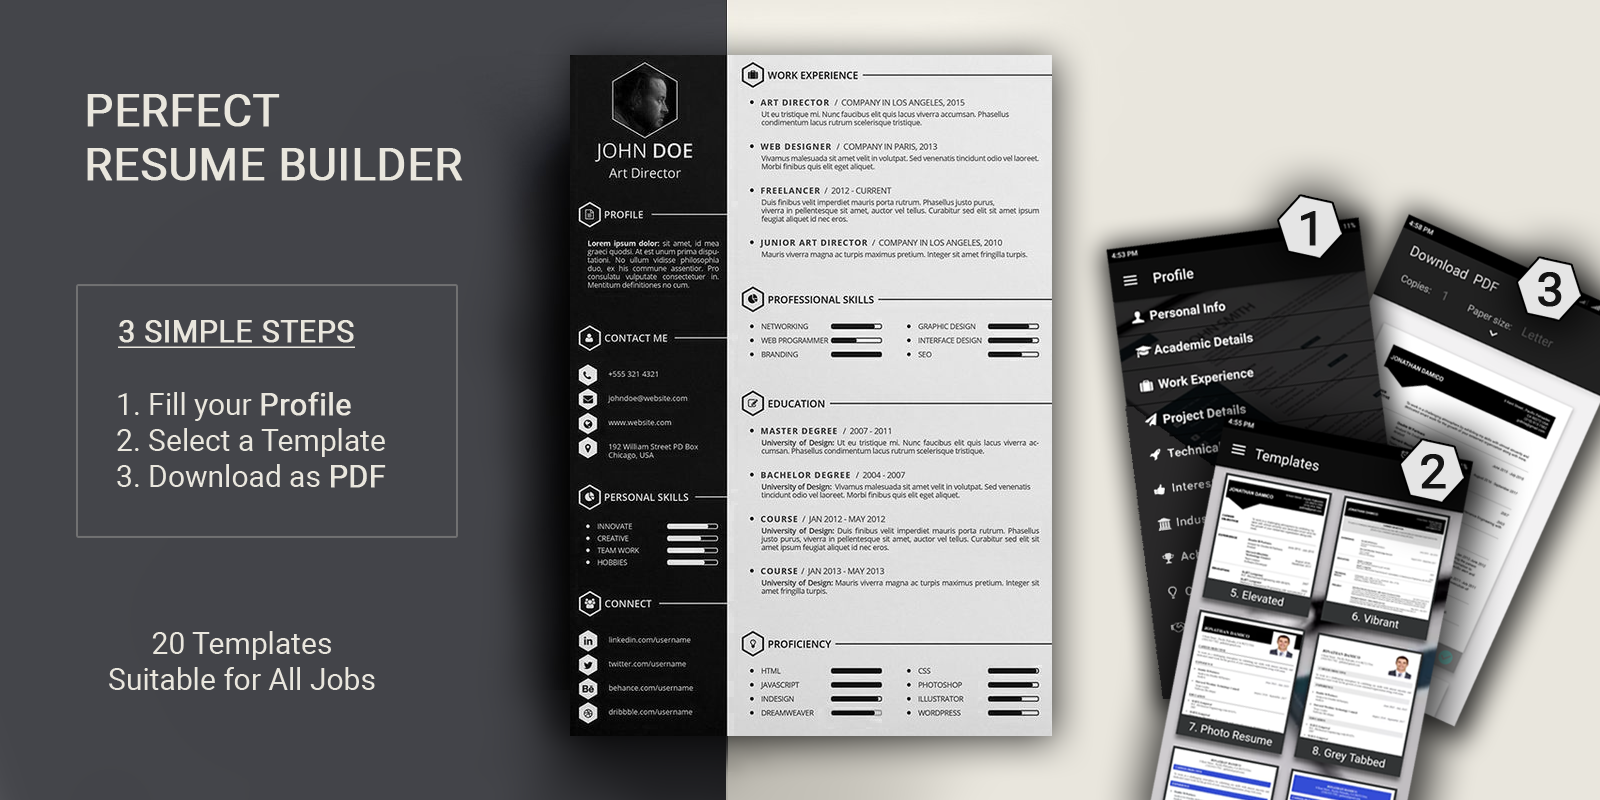 free resume builder with 30 resume templates suitable for various jobs this is the first resume app with more resume formats